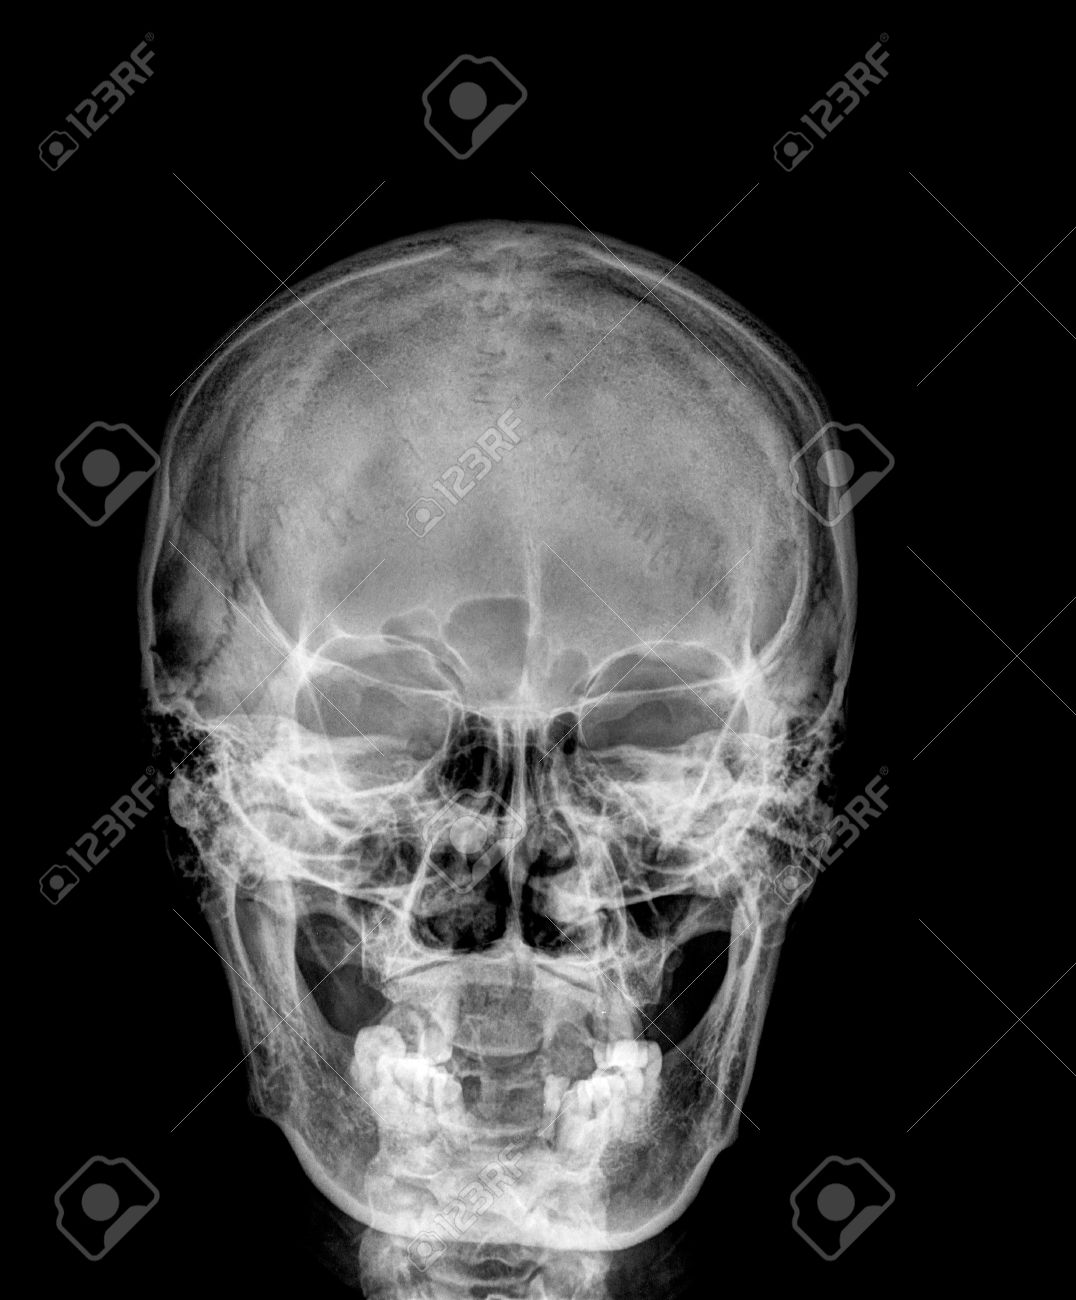 X-ray Normal Asian Skull (Old Man) Stock Photo, Picture And Royalty ...